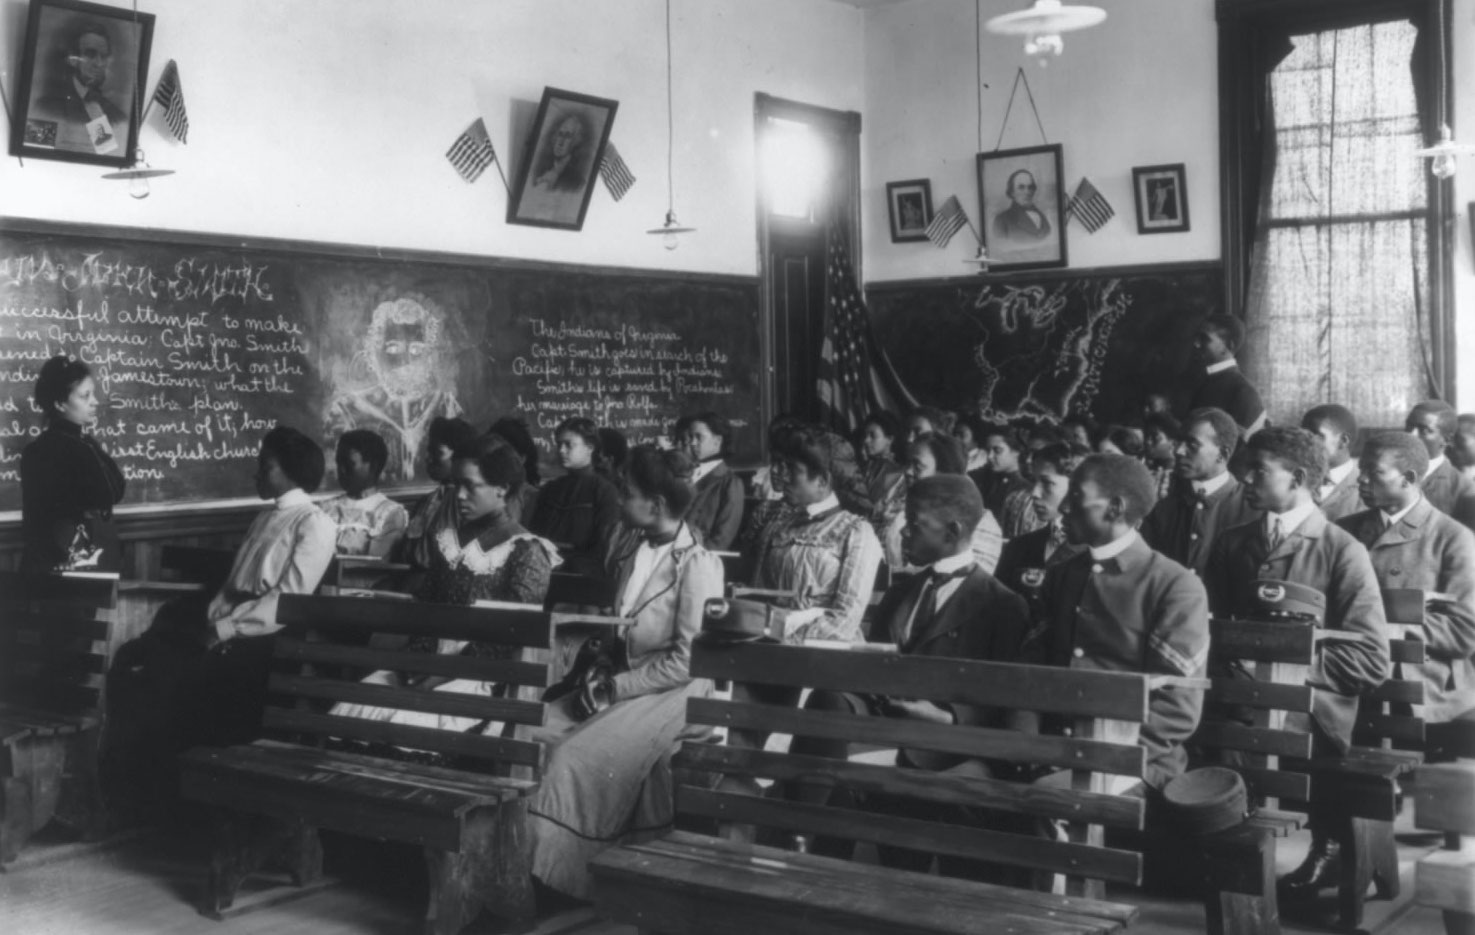 History class at Tuskegee, 1902.